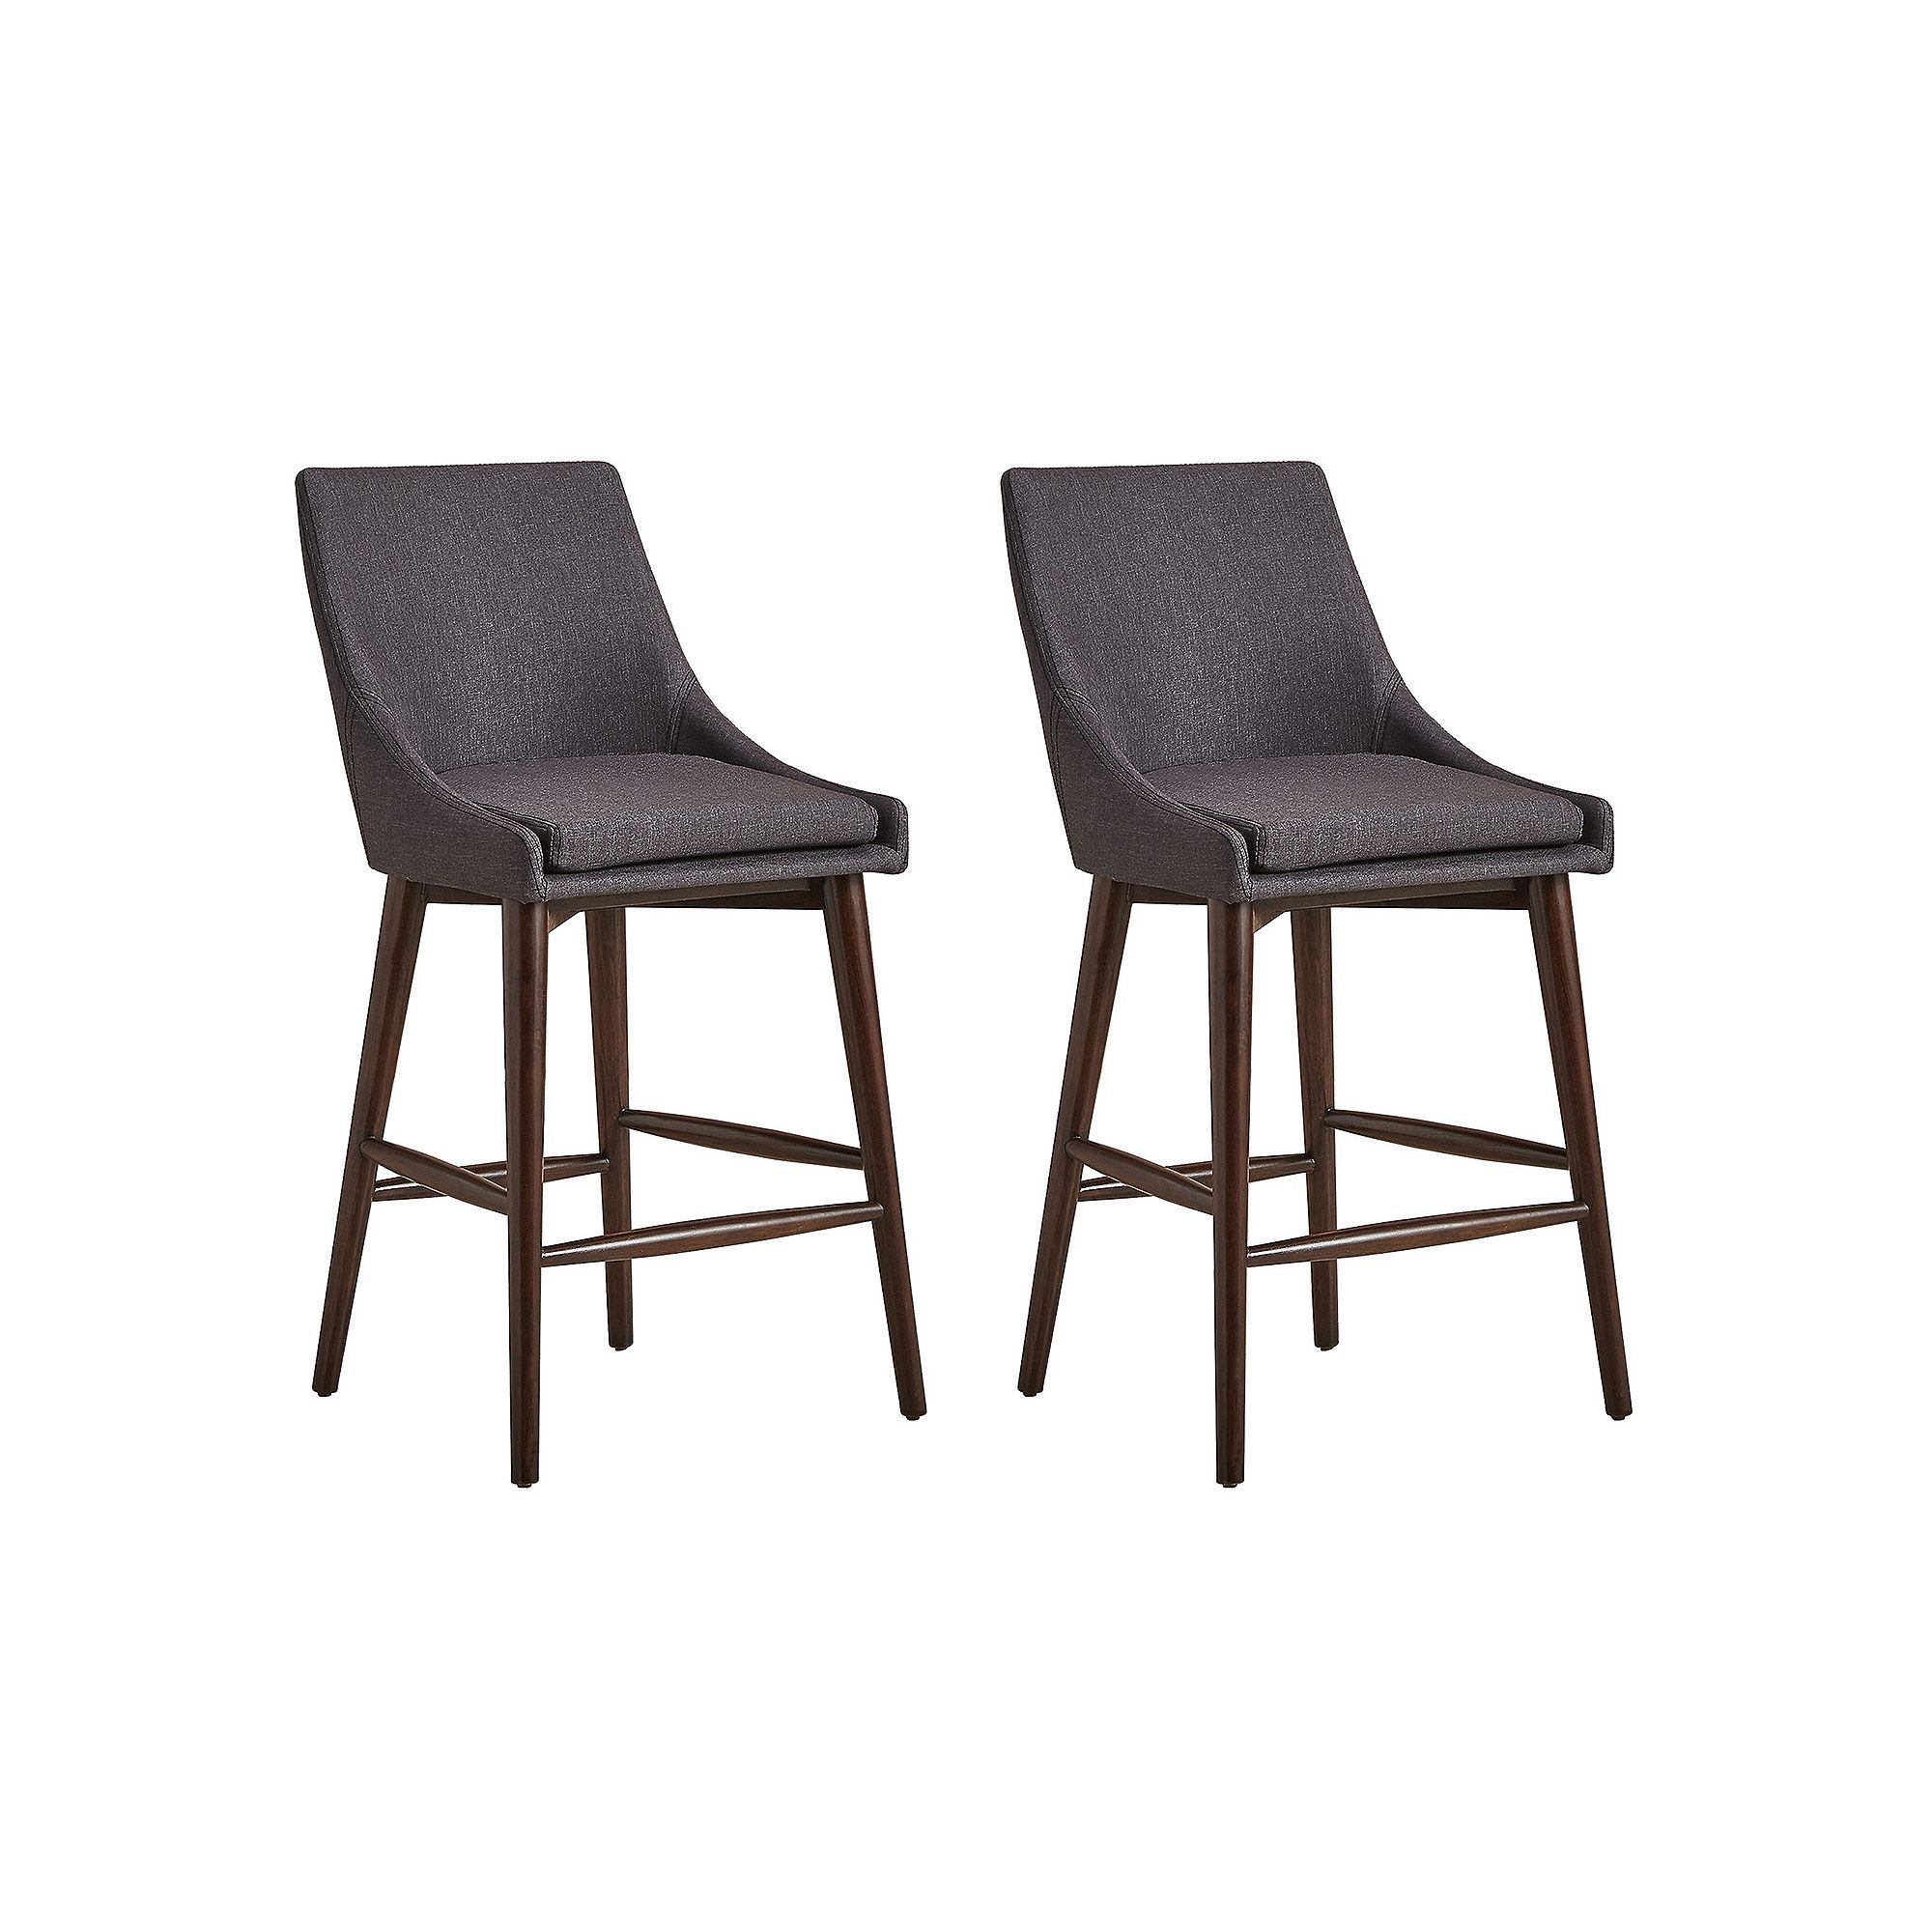 HomeVance Mid-Century Counter Stool 2-piece Set, Dark Grey